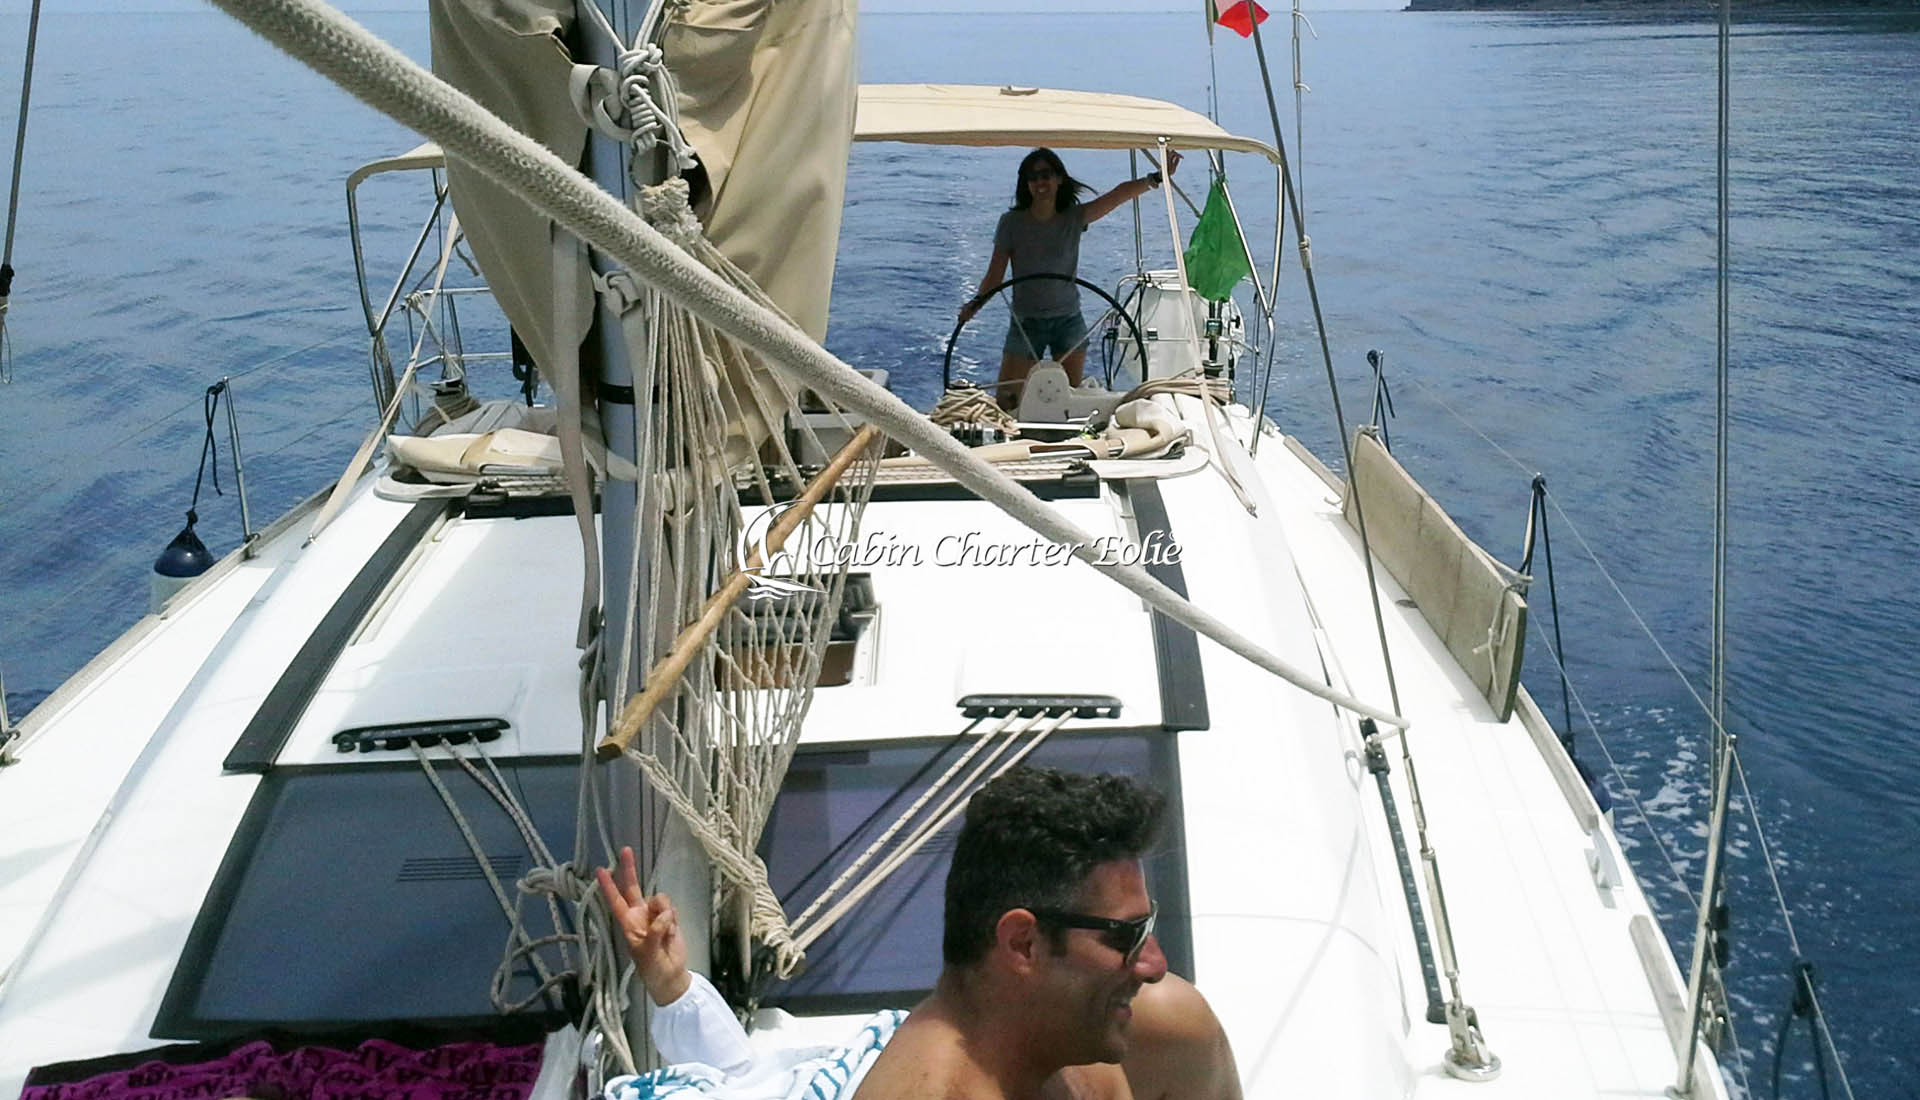 Imbarco a Cabina - Isole Eolie - Vacanza in Barca a Vela - Cabin Charter Eolie - Sicilia - Italy